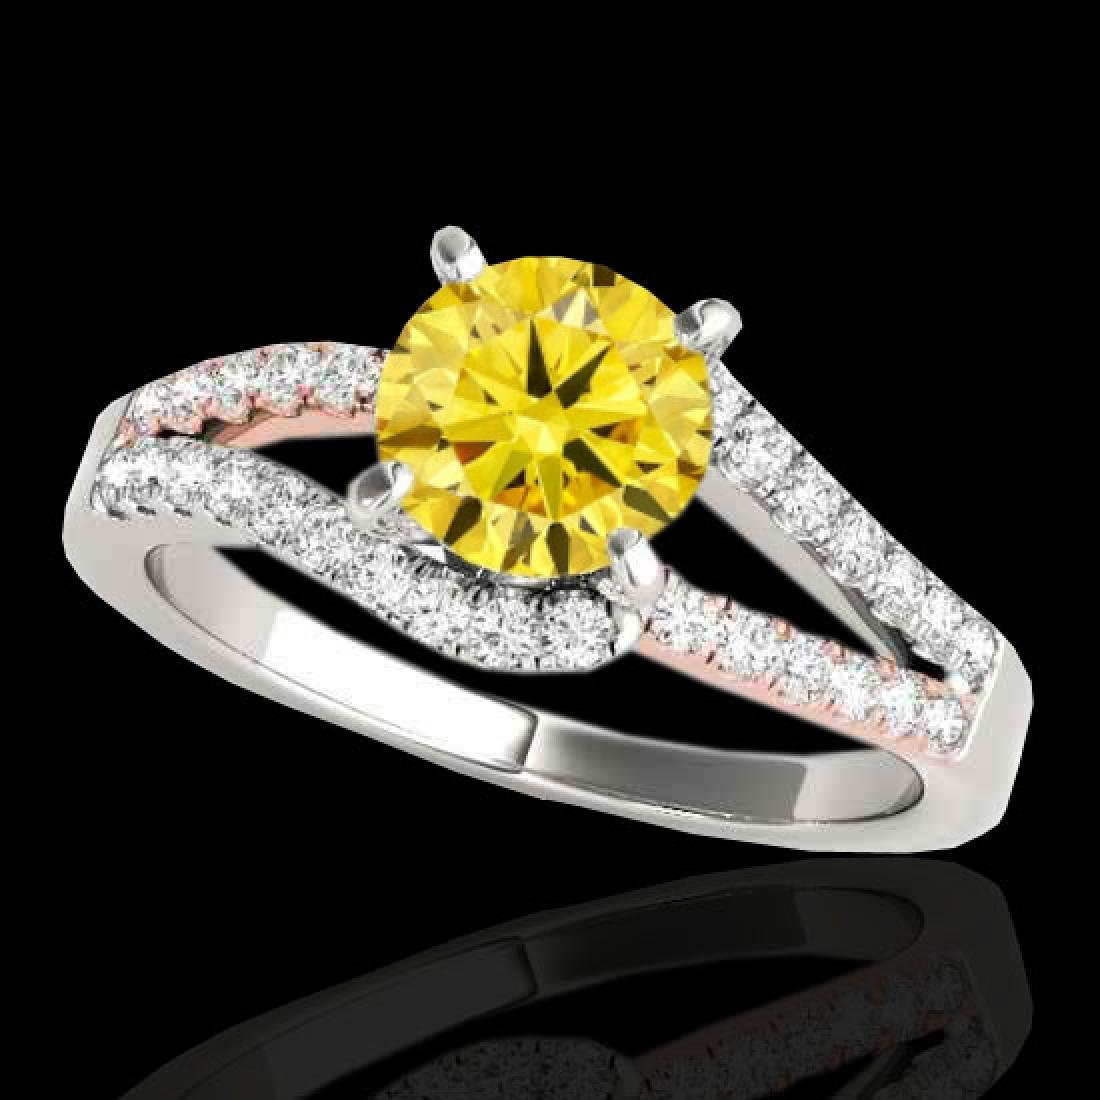 1.4 CTW Certified Si Fancy Yellow Diamond Solitaire